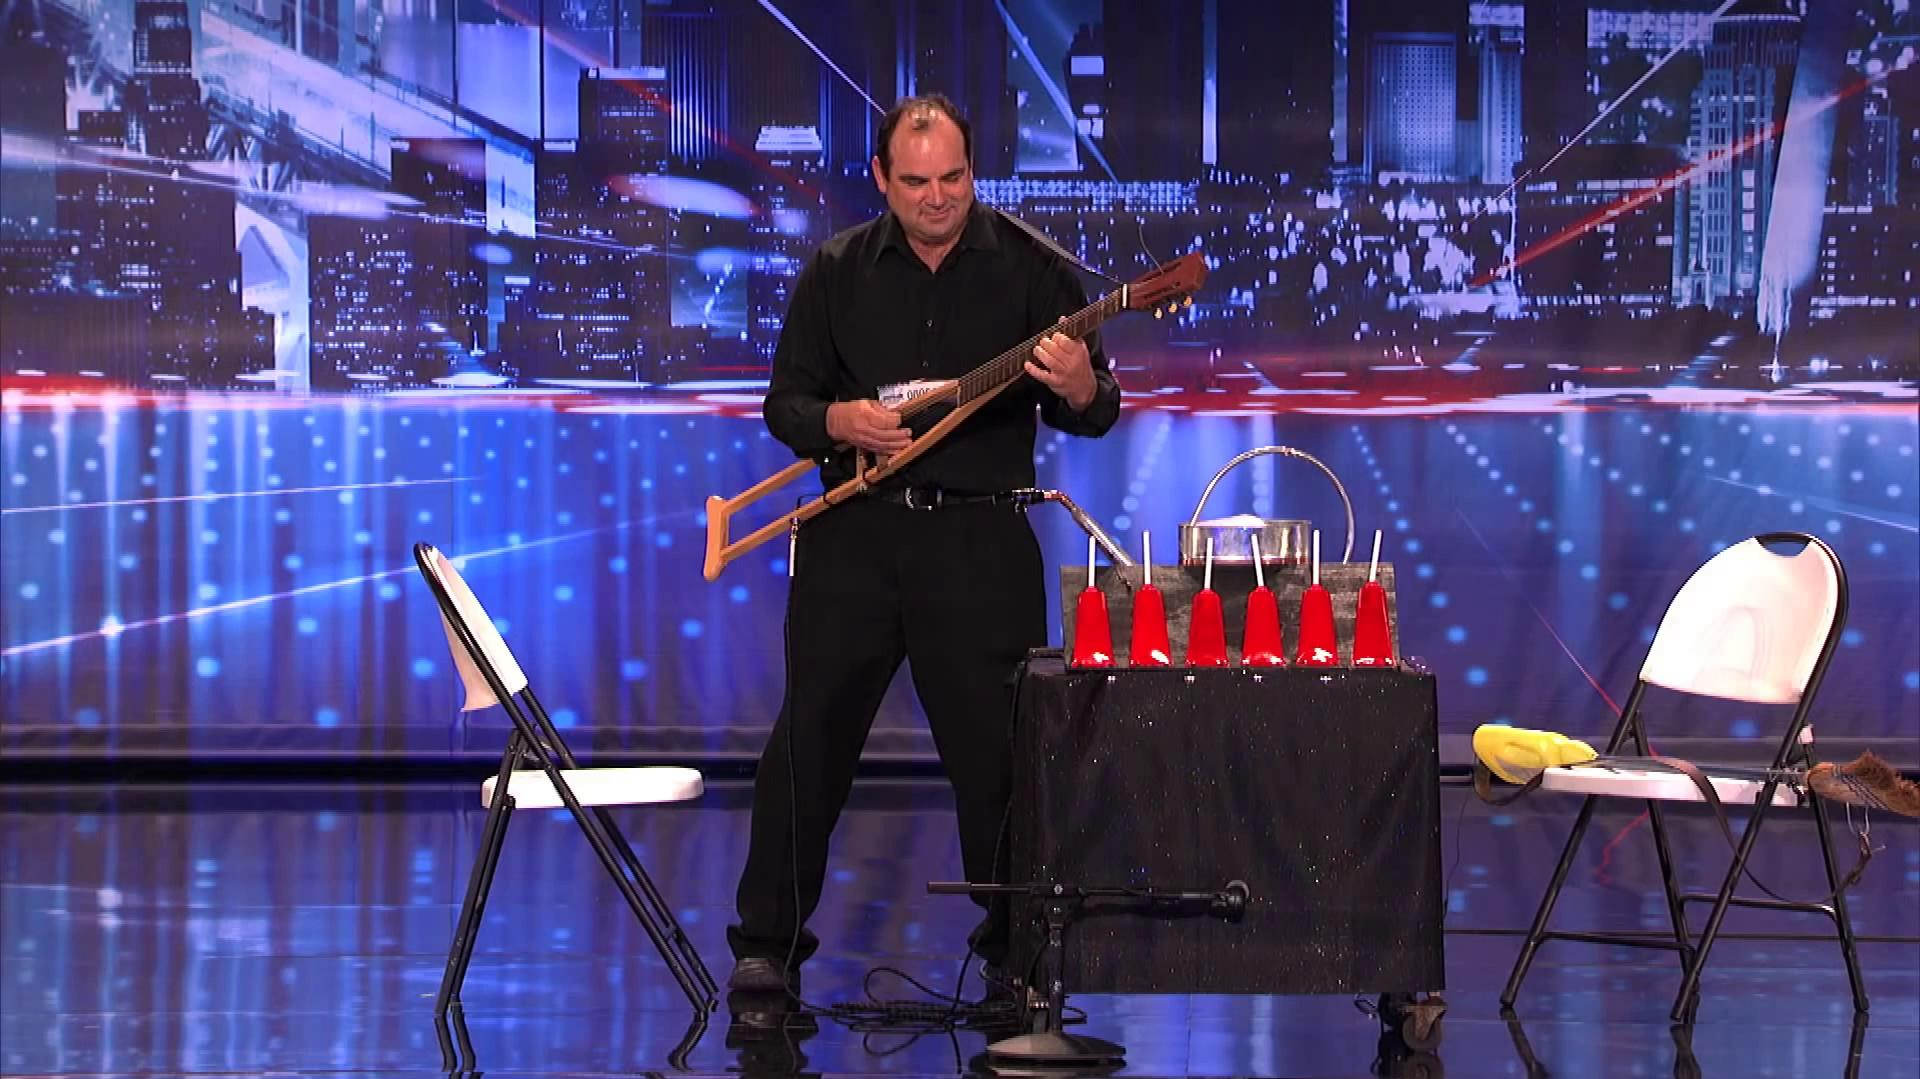 America's Got Talent 2013 - Season 8 - 105 - Abel - Musician Plays Instruments Made Out of Brooms and Crutches